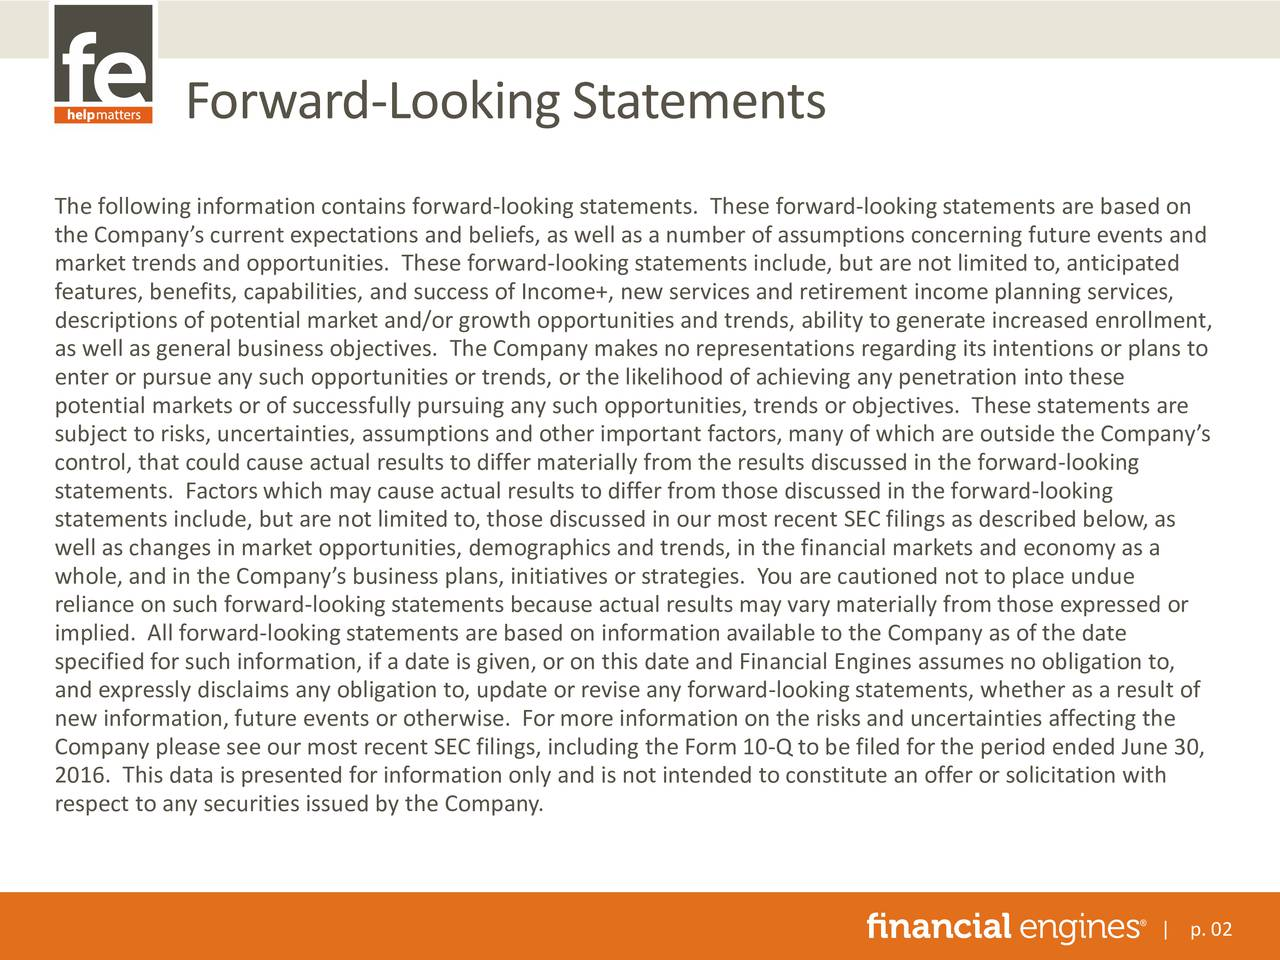 The following information contains forward-looking statements. These forward-lookingstatements are based on the Companys current expectations and beliefs, as well as a number of assumptions concerning future events and market trends and opportunities. These forward-looking statements include, but are not limited to, anticipated features, benefits, capabilities, and success of Income+, new services and retirement income planning services, descriptions of potential market and/or growth opportunities and trends, ability to generate increased enrollment, as well as general business objectives. The Company makes no representations regarding its intentions or plans to enter or pursue any such opportunities or trends, or the likelihood of achieving any penetration into these potential markets or of successfully pursuing any such opportunities, trends or objectives. These statements are subject to risks, uncertainties, assumptions and other important factors, many of which are outside the Companys control, that could cause actual results to differ materially from the results discussed in the forward-looking statements. Factors which may cause actual results to differ from those discussed in the forward-looking statements include, but are not limited to, those discussed in our most recent SEC filings as described below, as well as changes in market opportunities, demographics and trends, in the financial markets and economy as a whole, and in the Companys business plans, initiatives or strategies. You are cautioned not to place undue reliance on such forward-looking statements because actual results may vary materially from those expressed or implied. All forward-looking statements are based on information available to the Company as of the date specified for such information, if a date is given, or on this date and Financial Engines assumes no obligation to, and expressly disclaims any obligation to, update or revise any forward-looking statements, whether as a result of new information, future events or otherwise. For more information on the risks and uncertainties affecting the Company please see our most recent SEC filings, including the Form 10-Q to be filed for the period ended June 30, 2016. This data is presented for information only and is not intended to constitute an offer or solicitation with respect to any securities issued by the Company. | p. 02